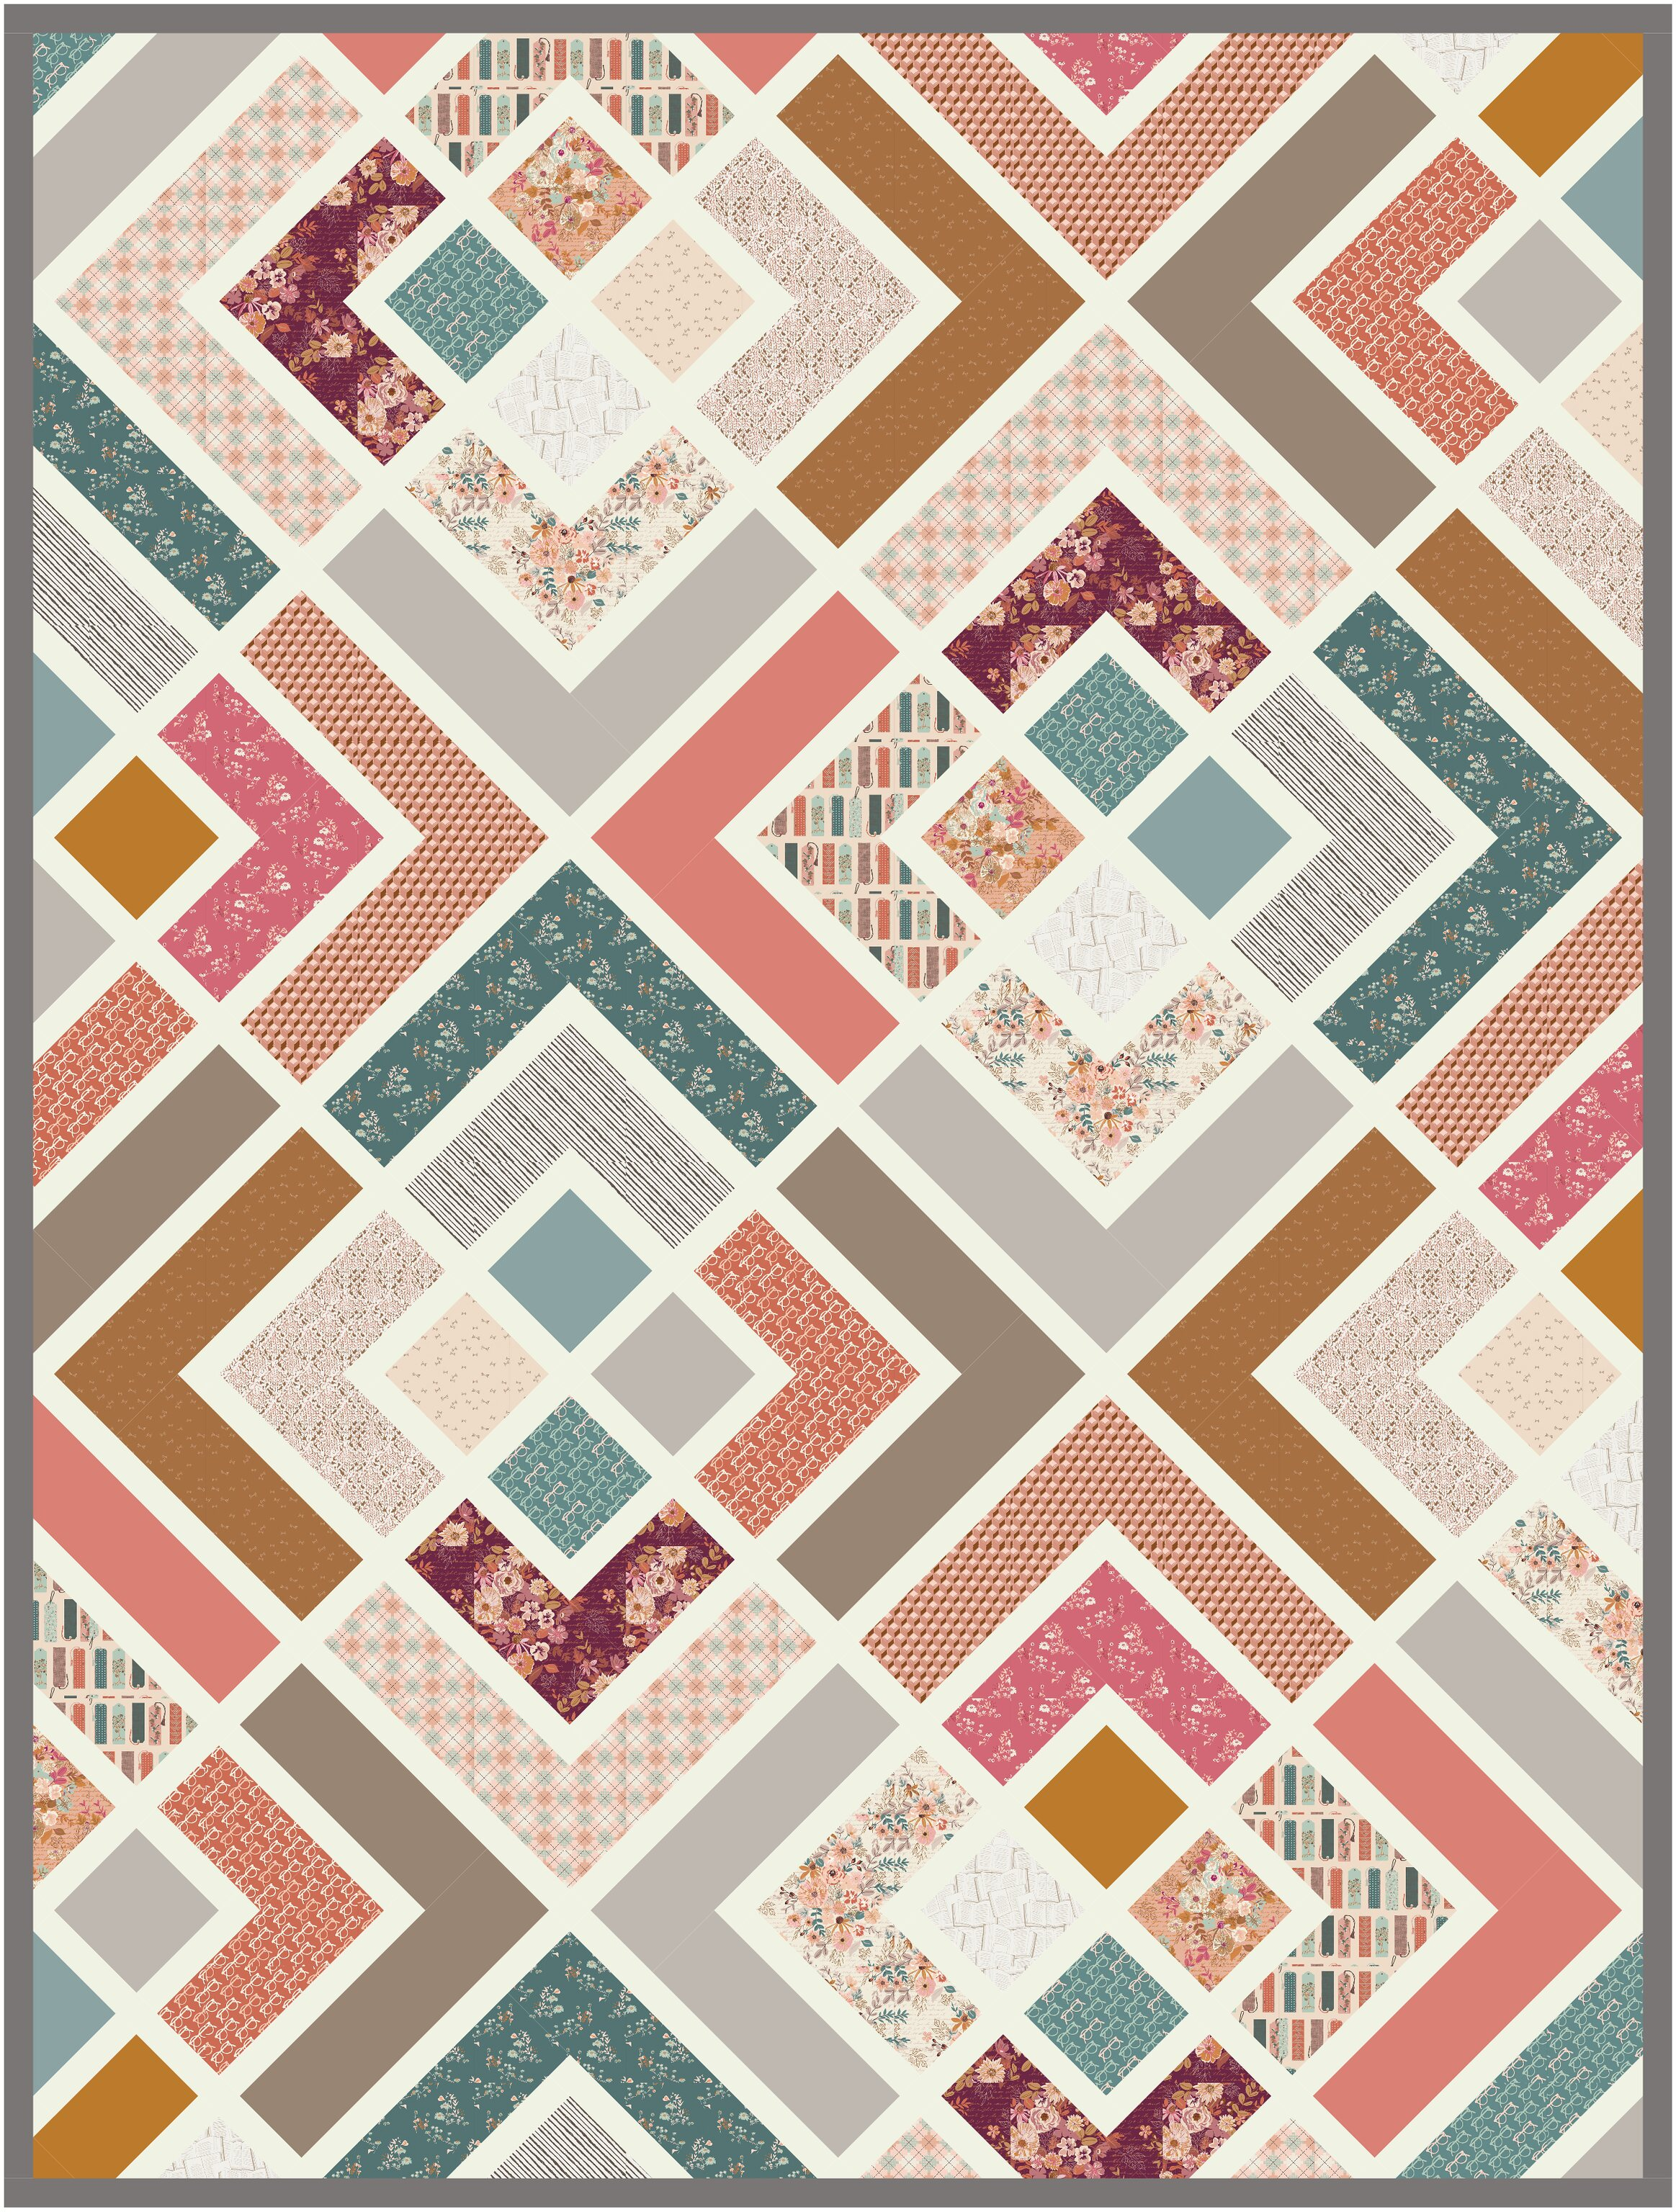 The Penny Quilt in Bookish